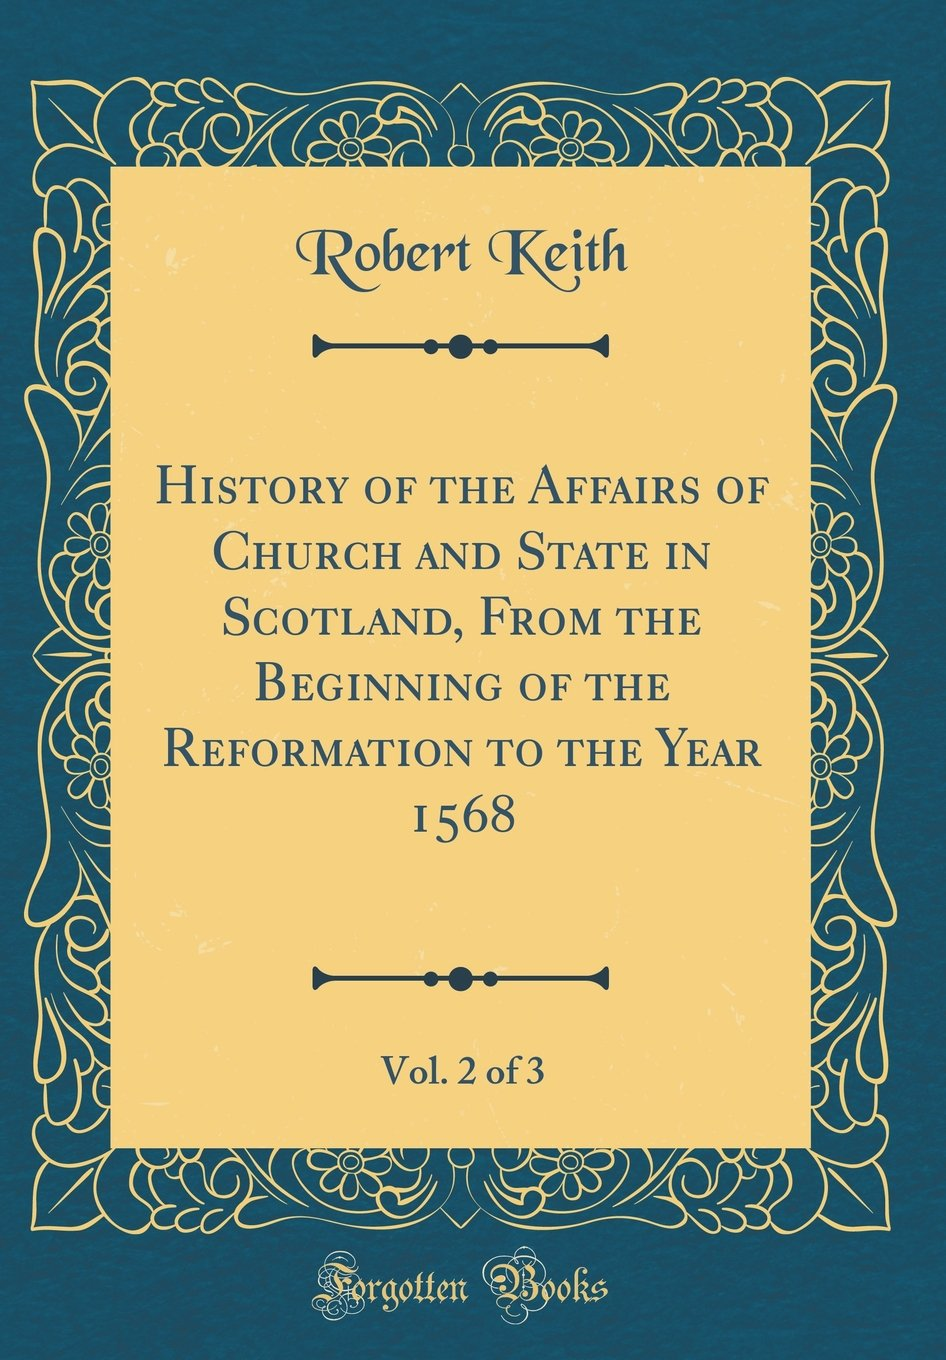 Download History of the Affairs of Church and State in Scotland, from the Beginning of the Reformation to the Year 1568, Vol. 2 of 3 (Classic Reprint) ebook